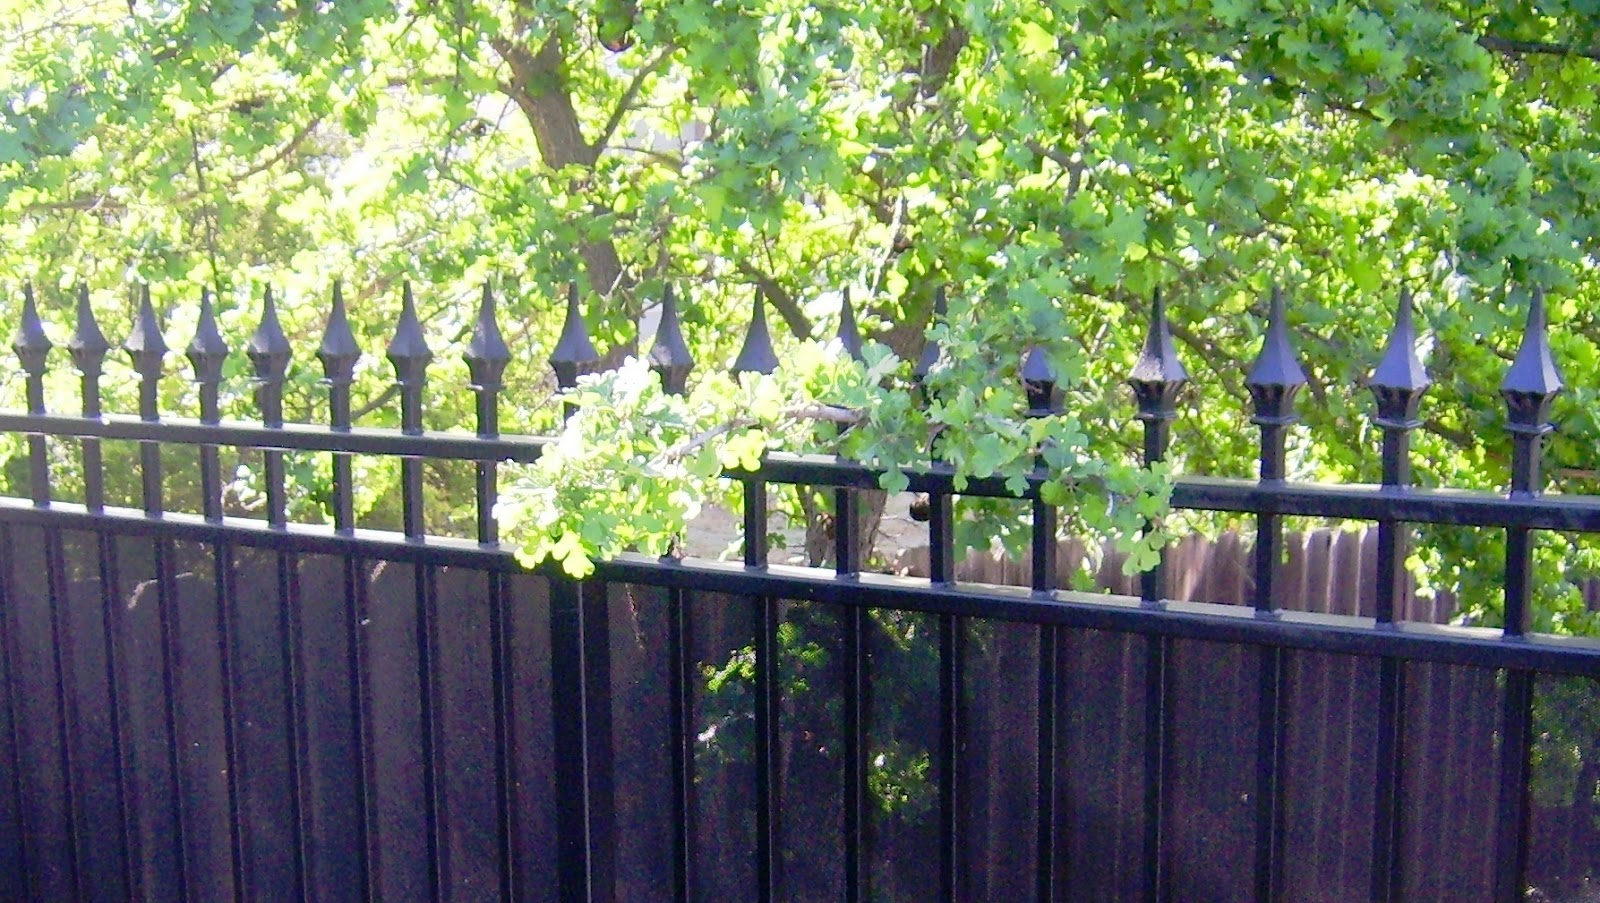 Wrought Iron Designs: Privacy Screening